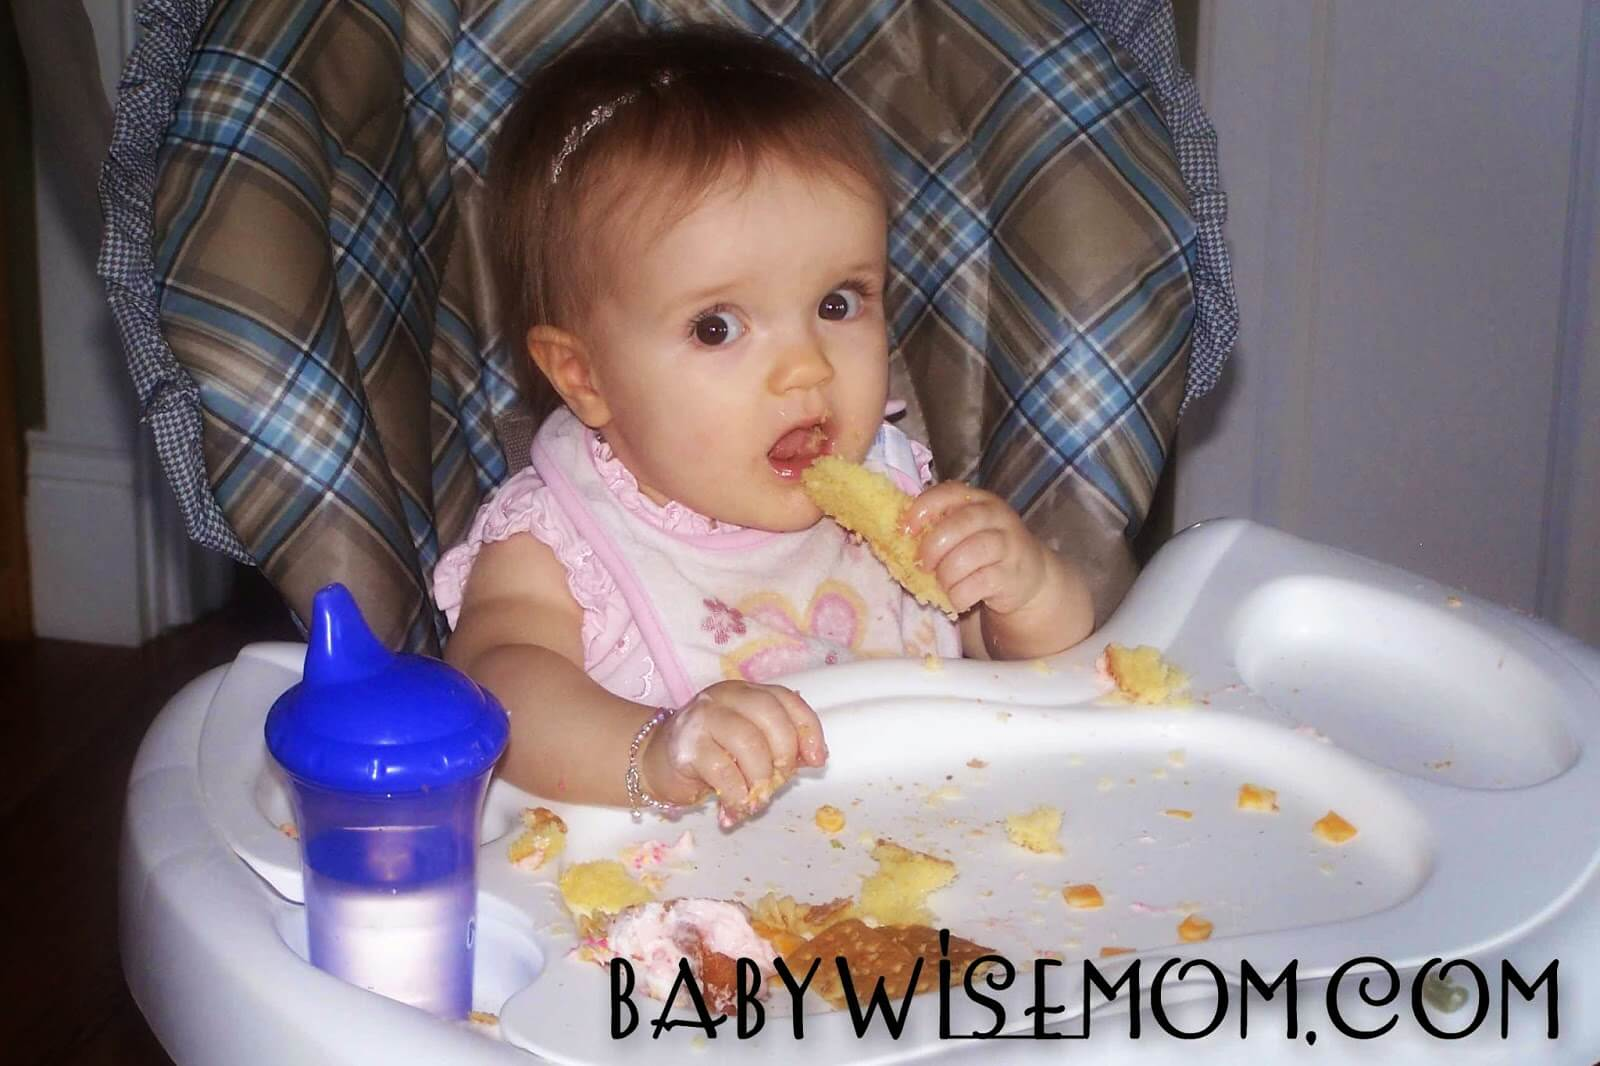 How to wean a baby from breastfeeding. Week by week process for gentle weaning.